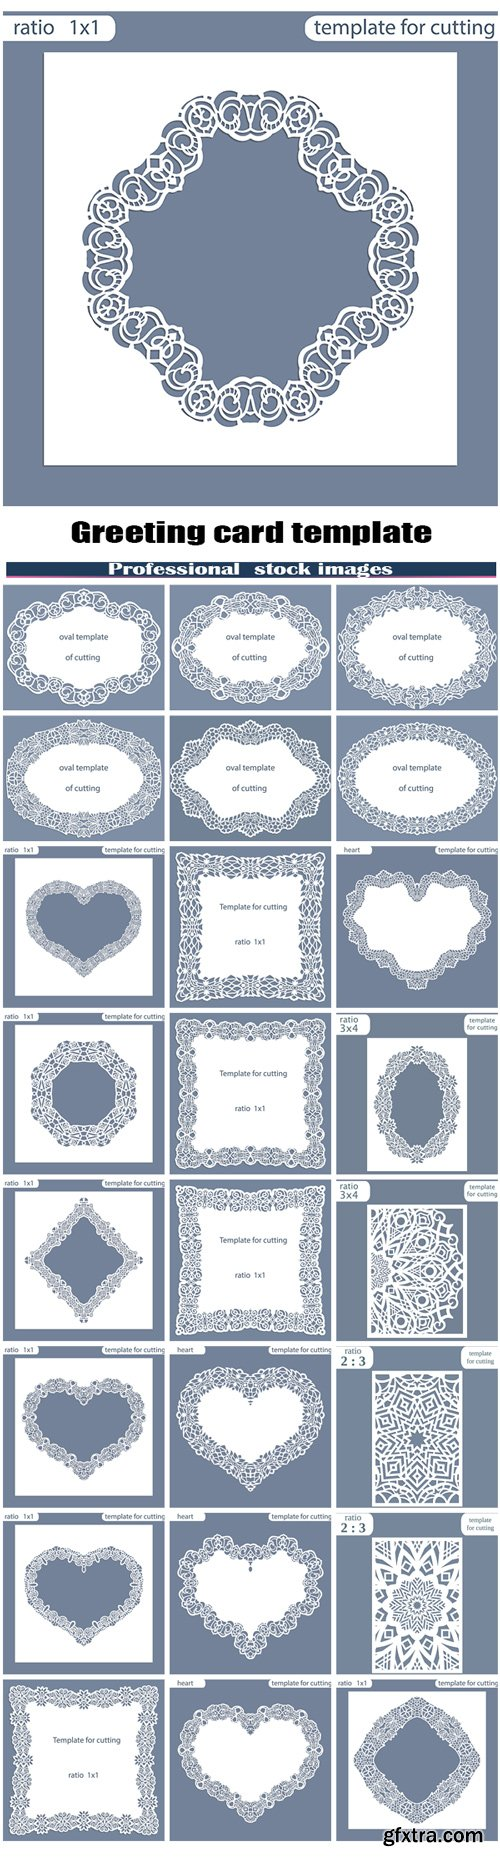 Greeting card template for cutting plotter # 12